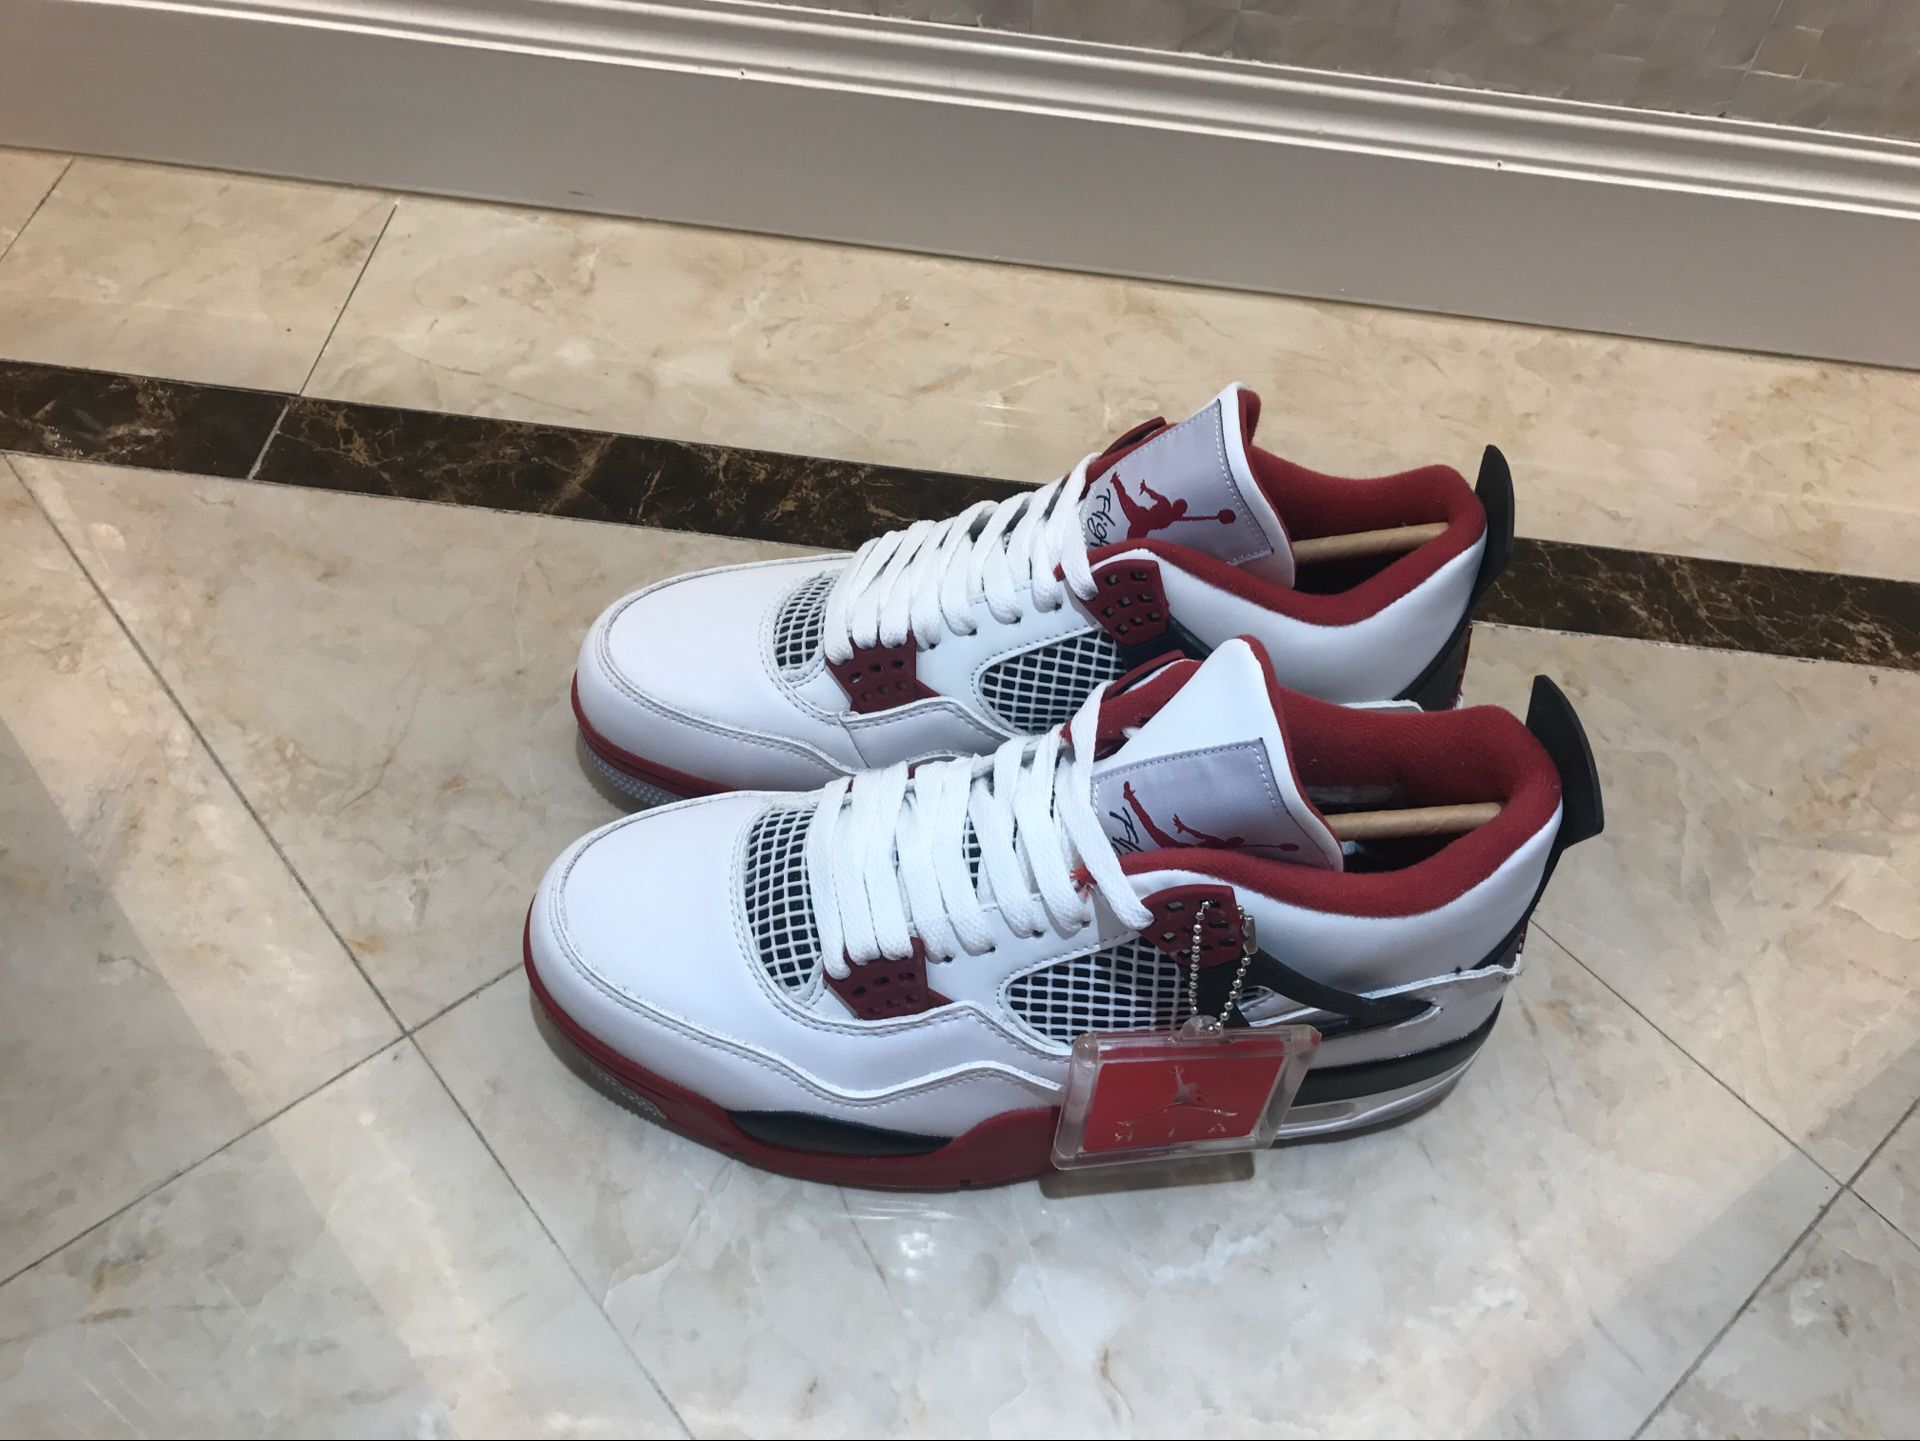 9637a24766d ... discount code for men air jordan 4 retro white wine red black 6701a  af773